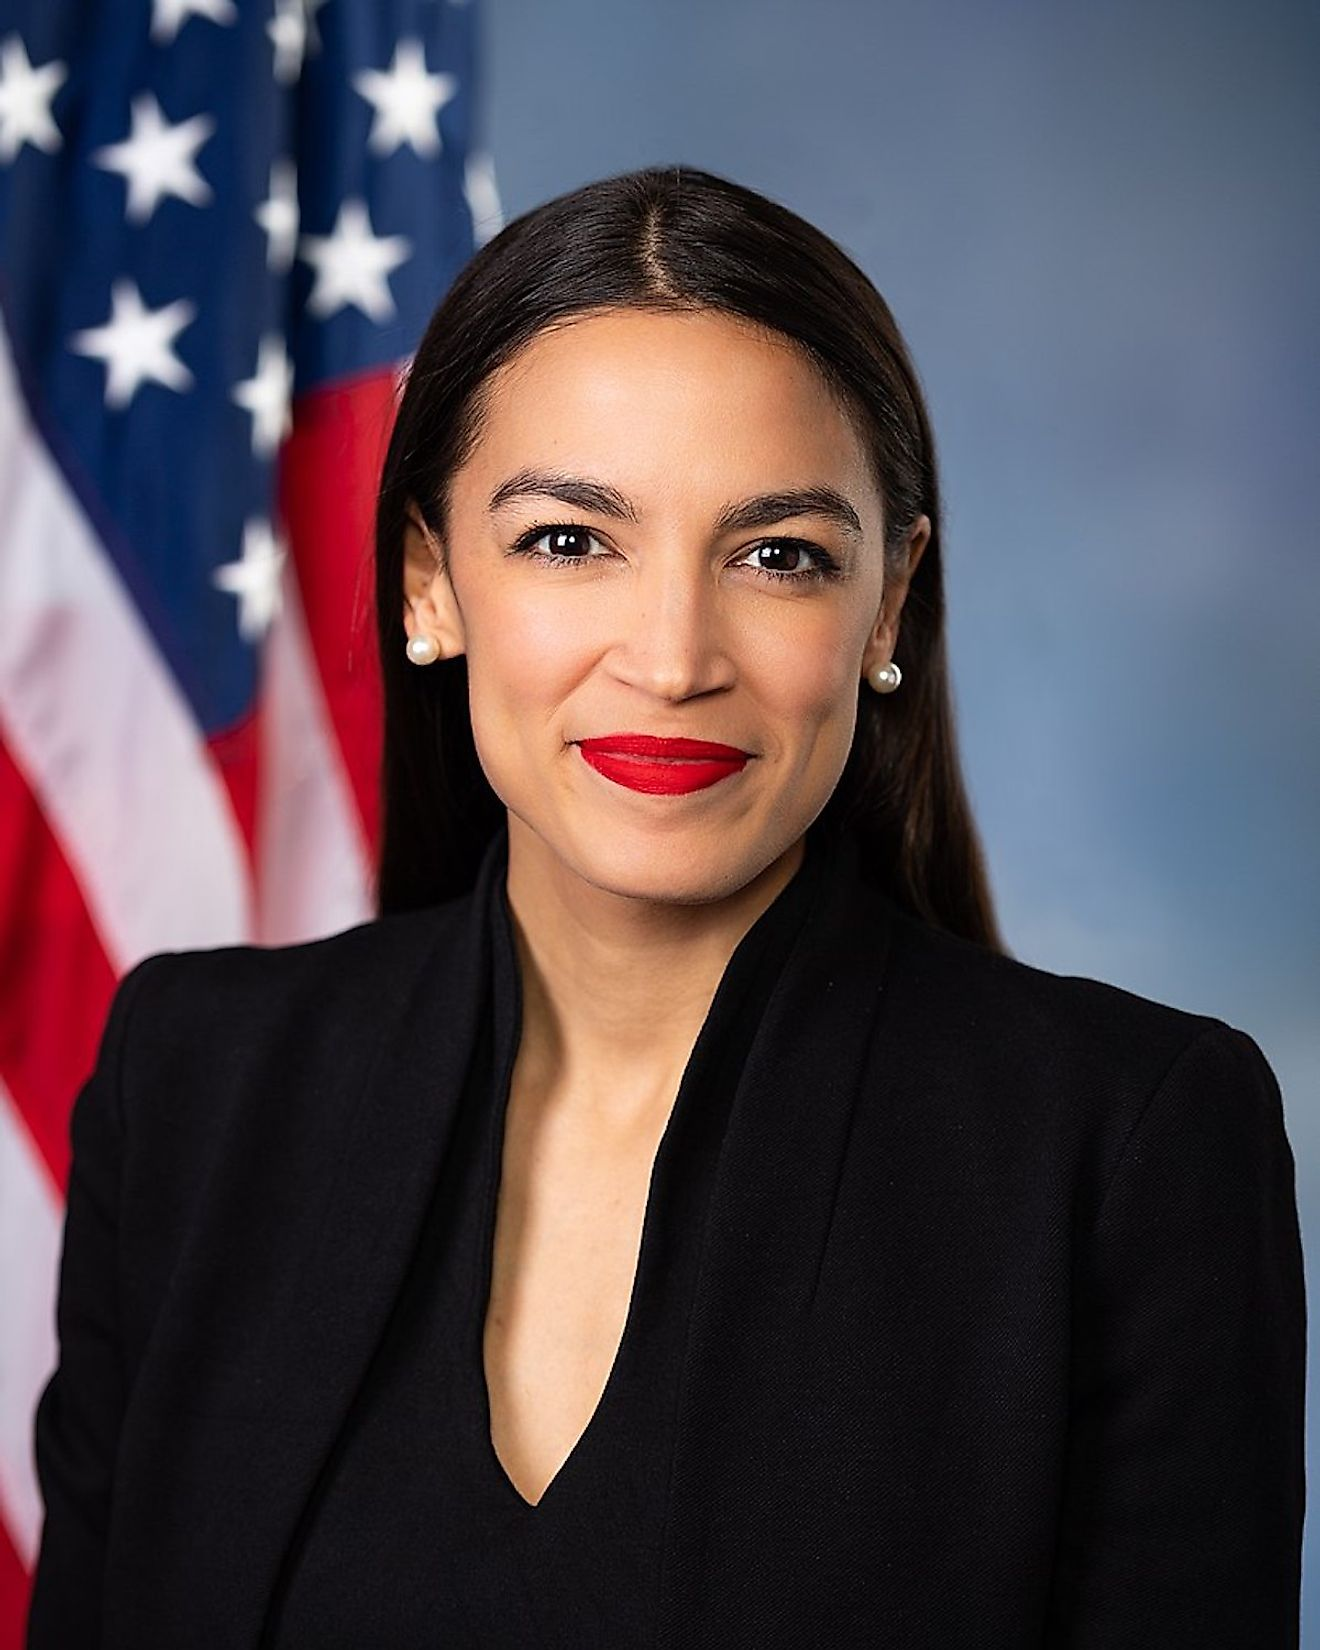 Alexandra Ocasio-Cortez. Image credit: Franmarie Metzler; U.S. House Office of Photography/Public domain